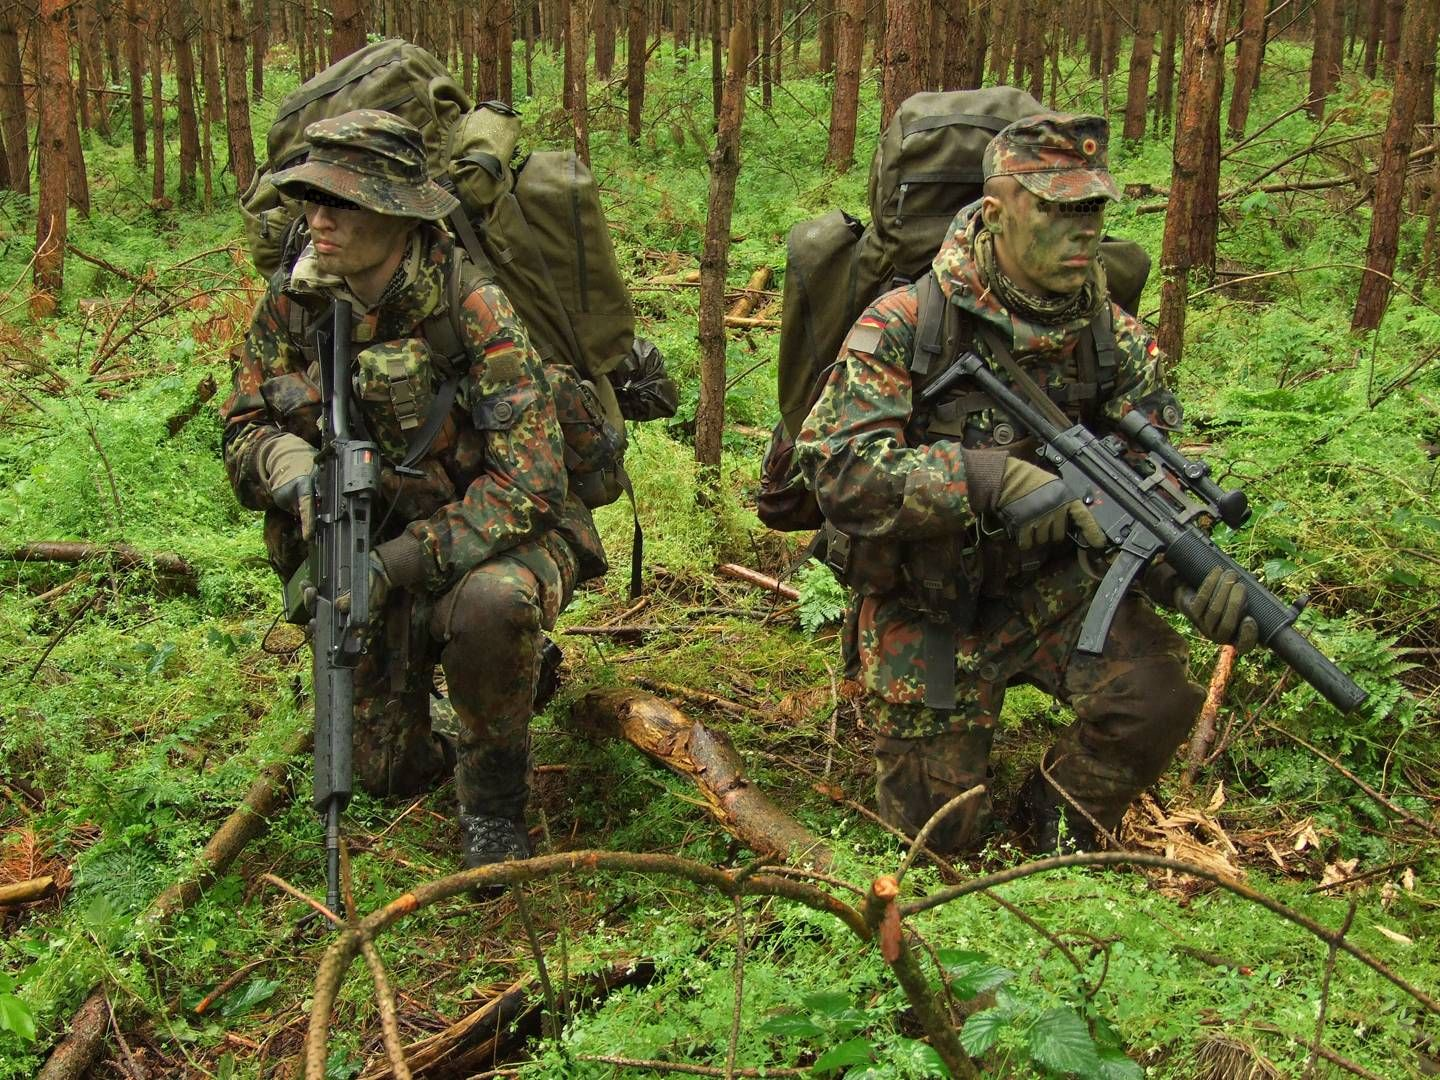 eb4e9b9d88e There is going to be a flecktarn boonie hat